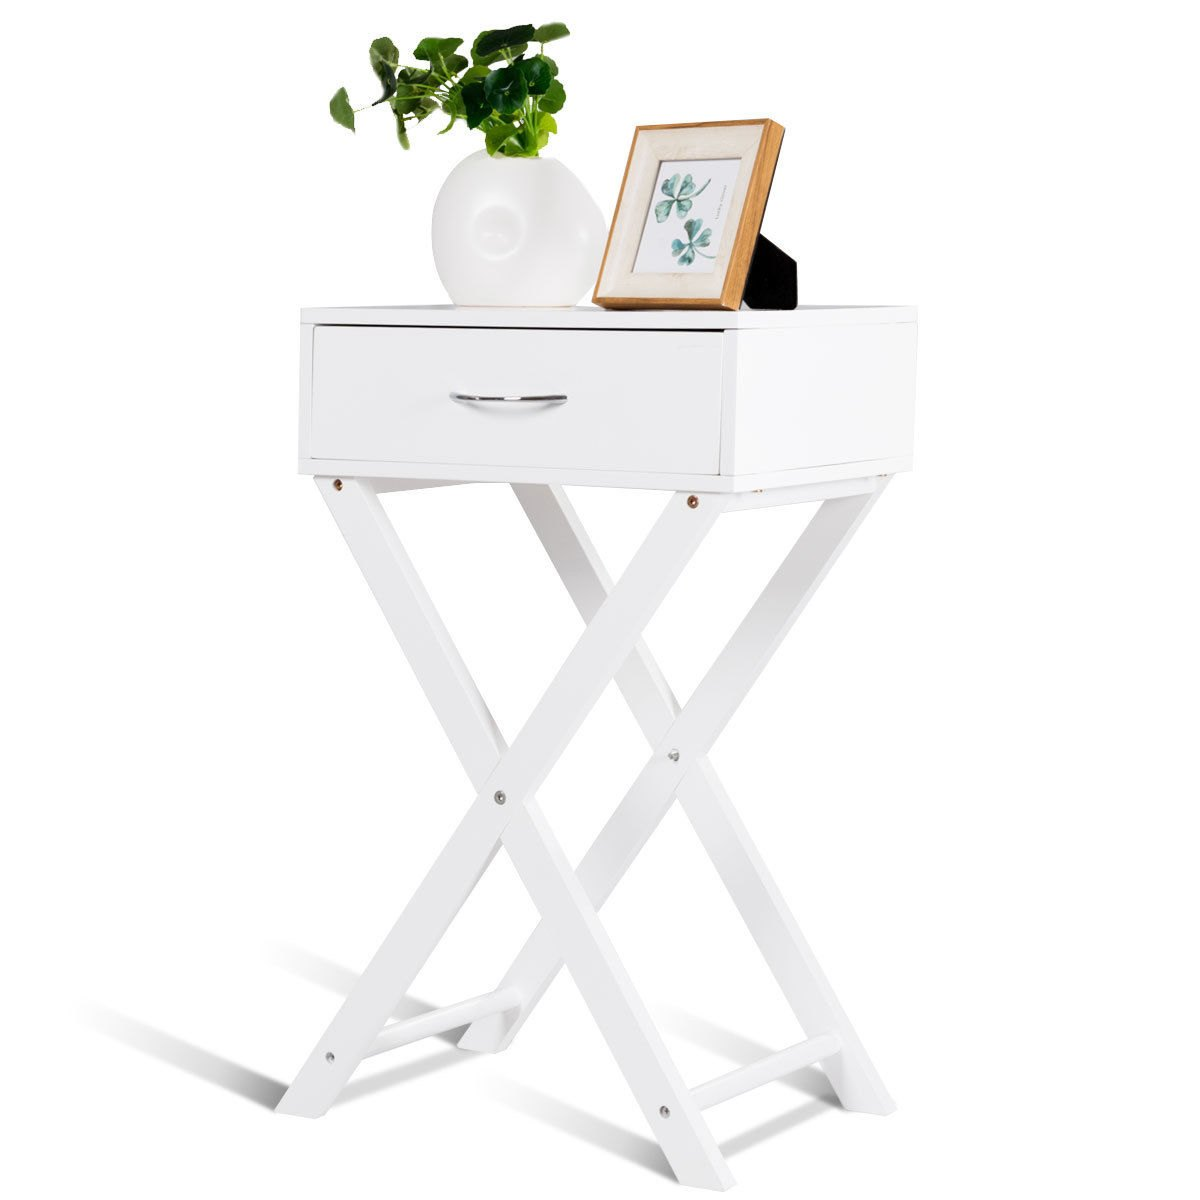 way nightstand shape drawer accent side end table tables with drawers modern home furniture white coffee and matching folding dinner rustic wood vintage retro gray set teak